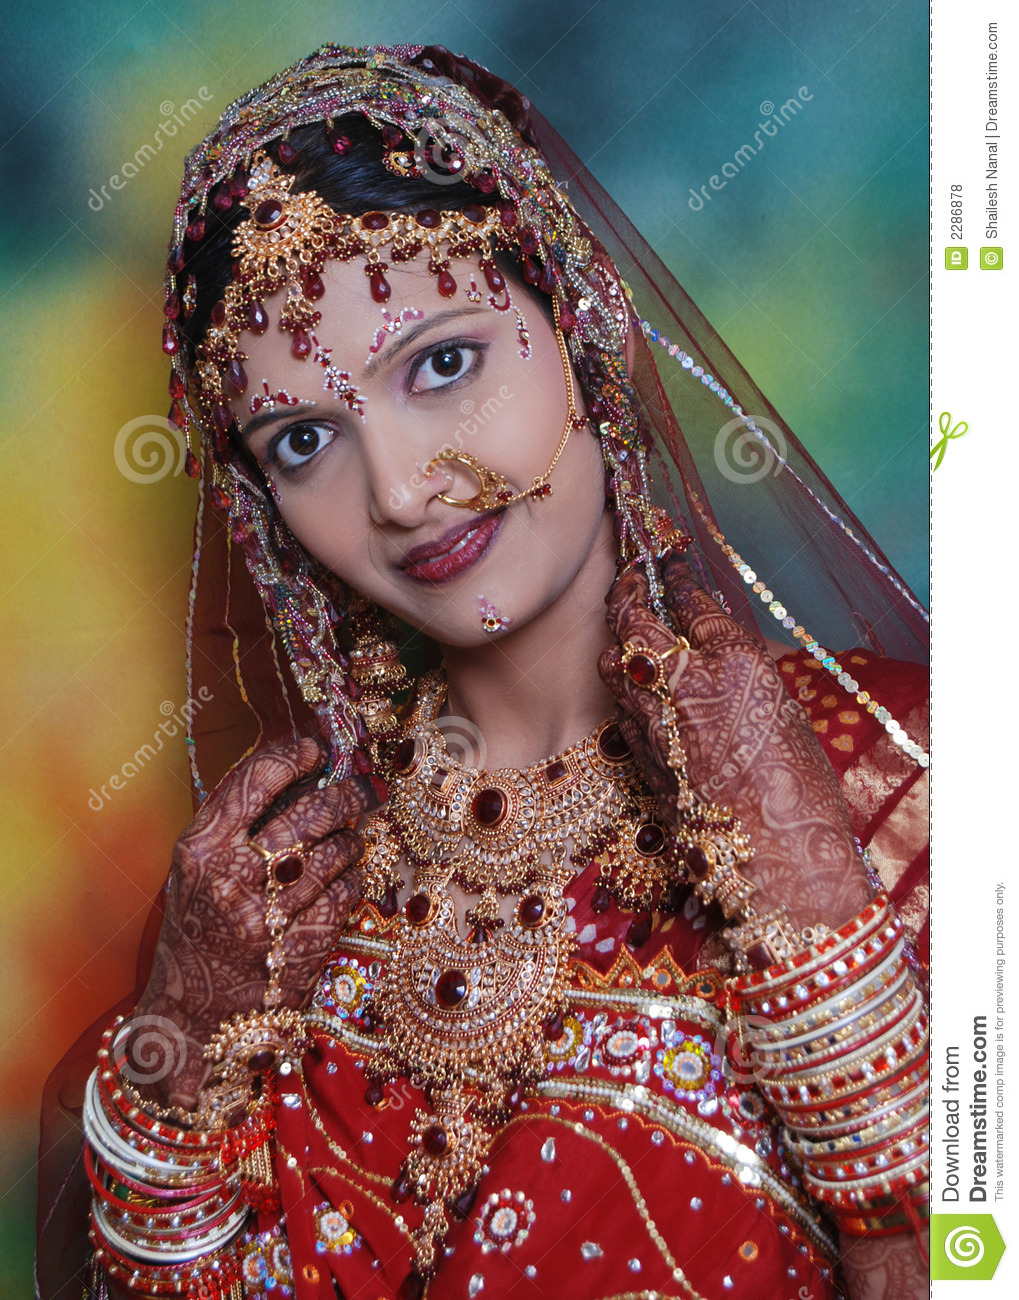 Image Result For Bride Groom Dresses For Indian Wedding